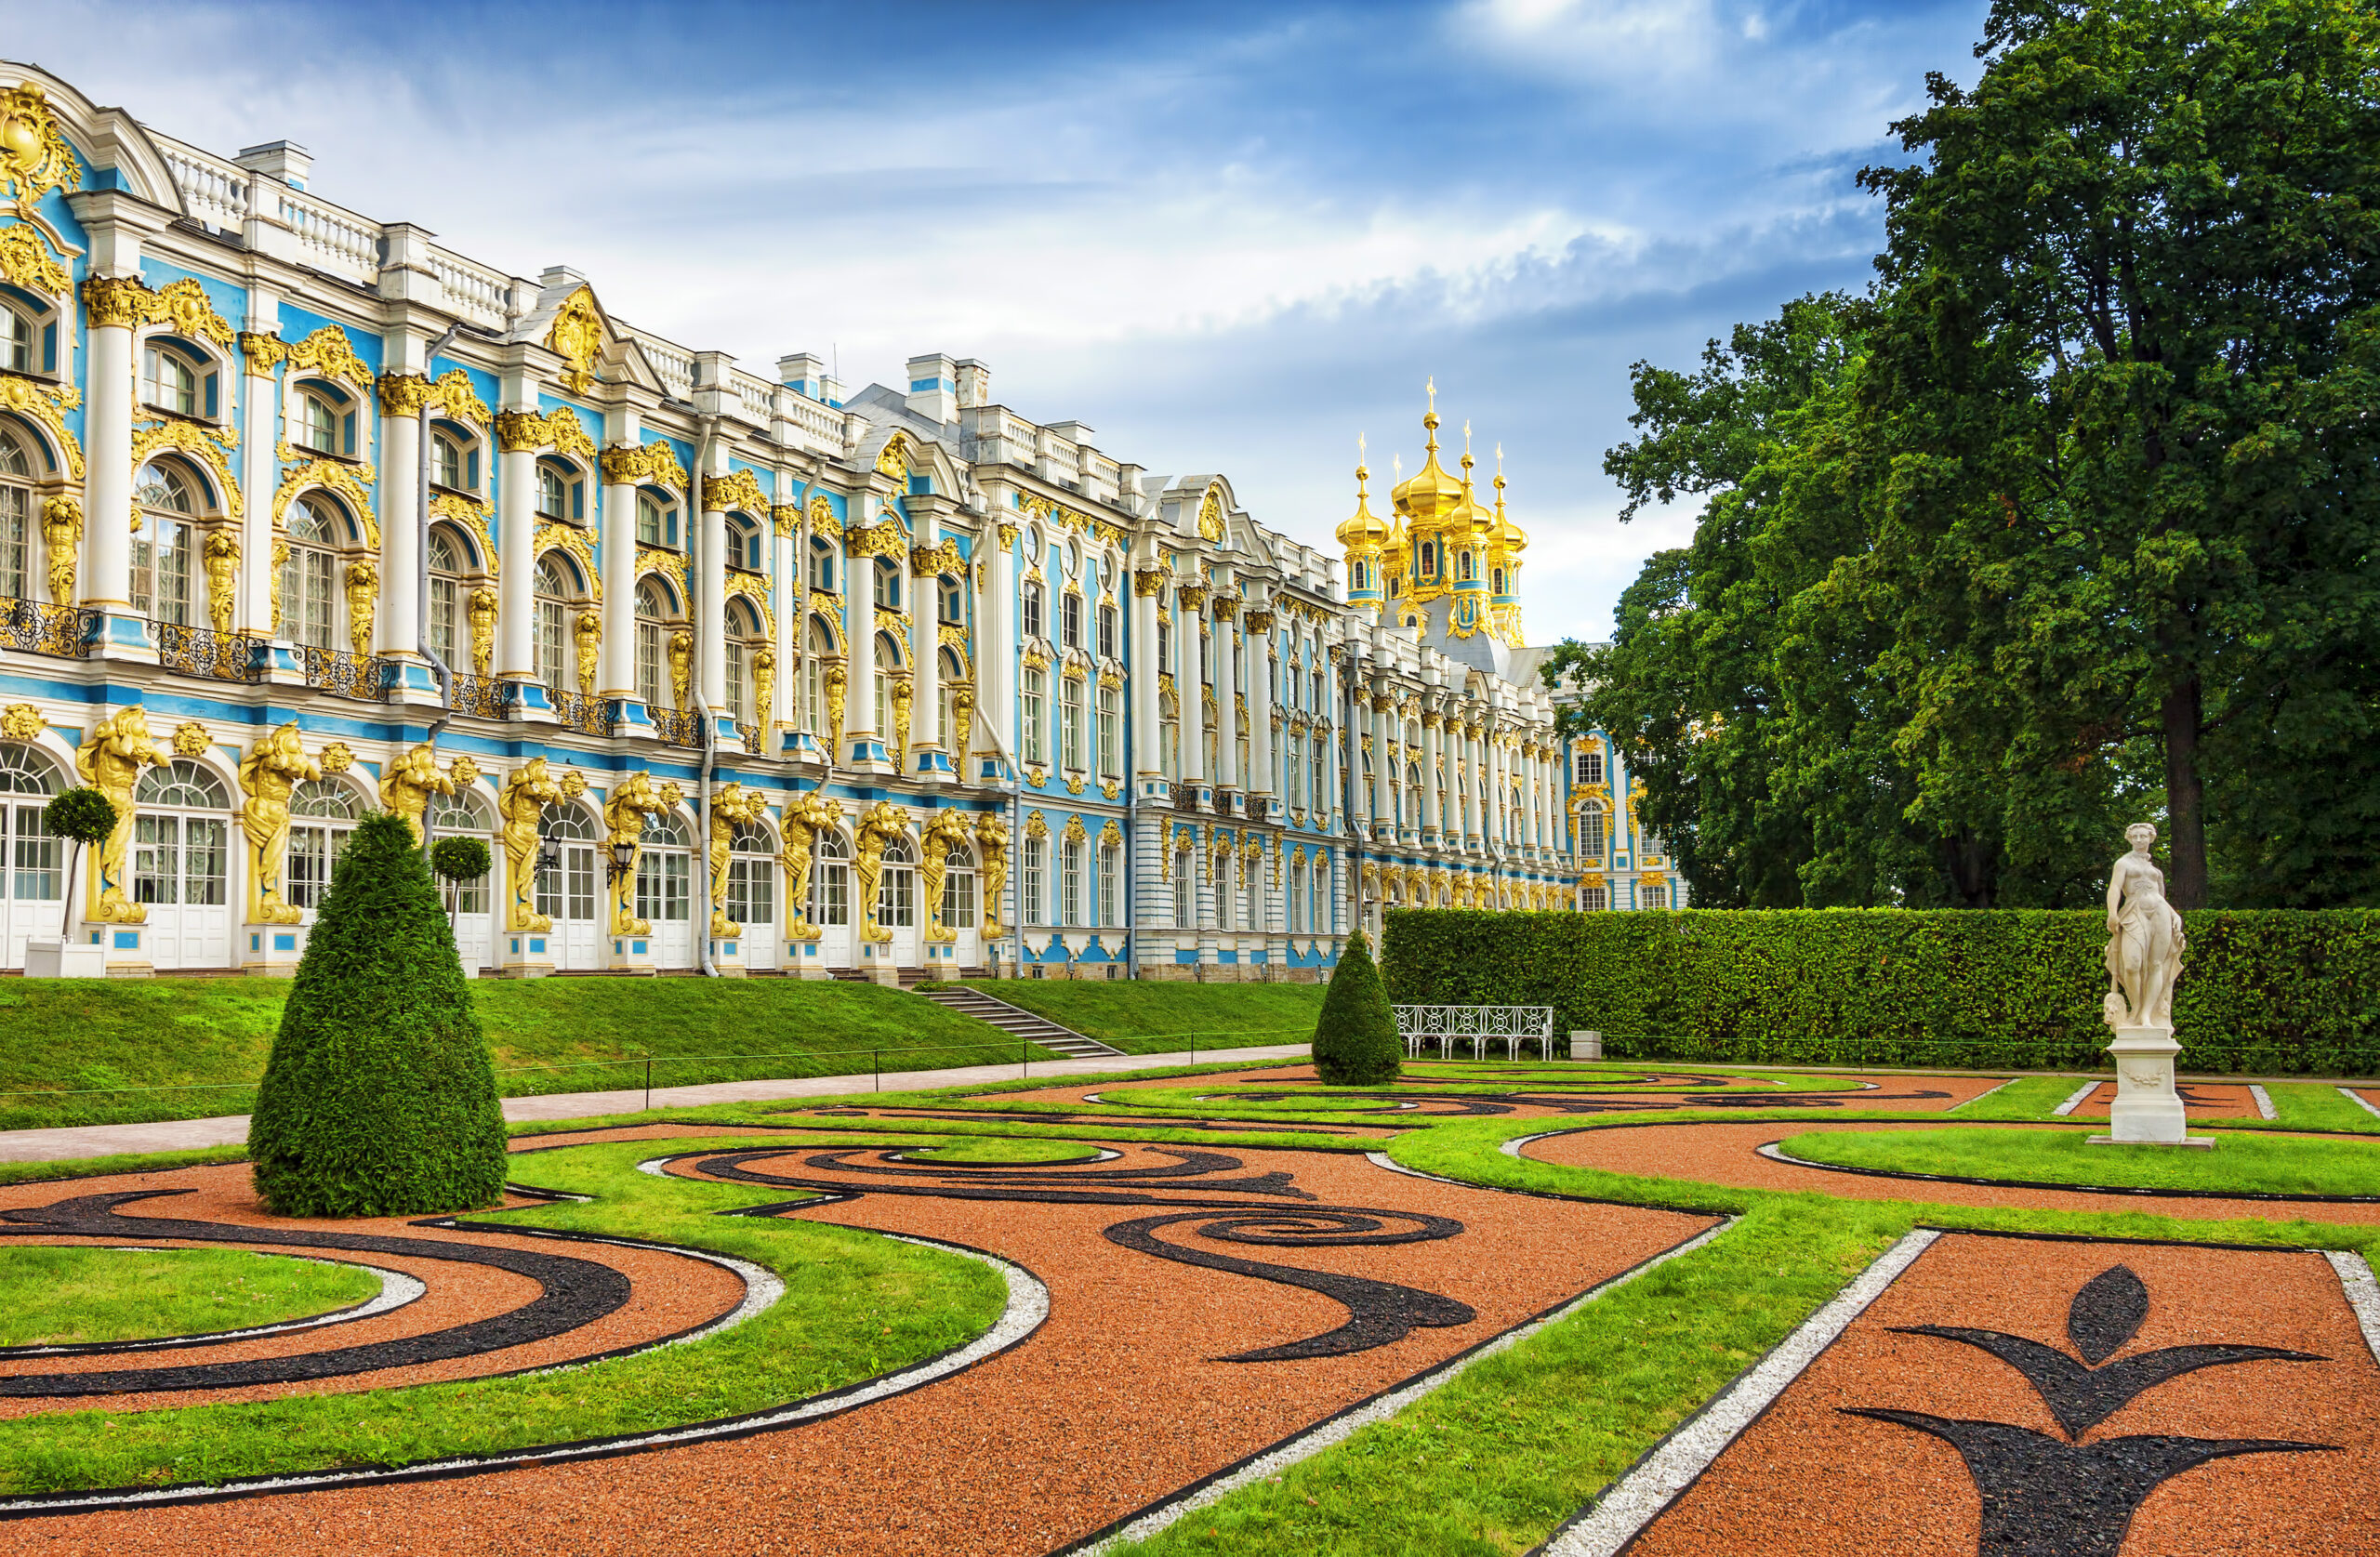 The Catherine Palace located in the town of Tsarskoye Selo (Pushkin), St. Petersburg, Russia.